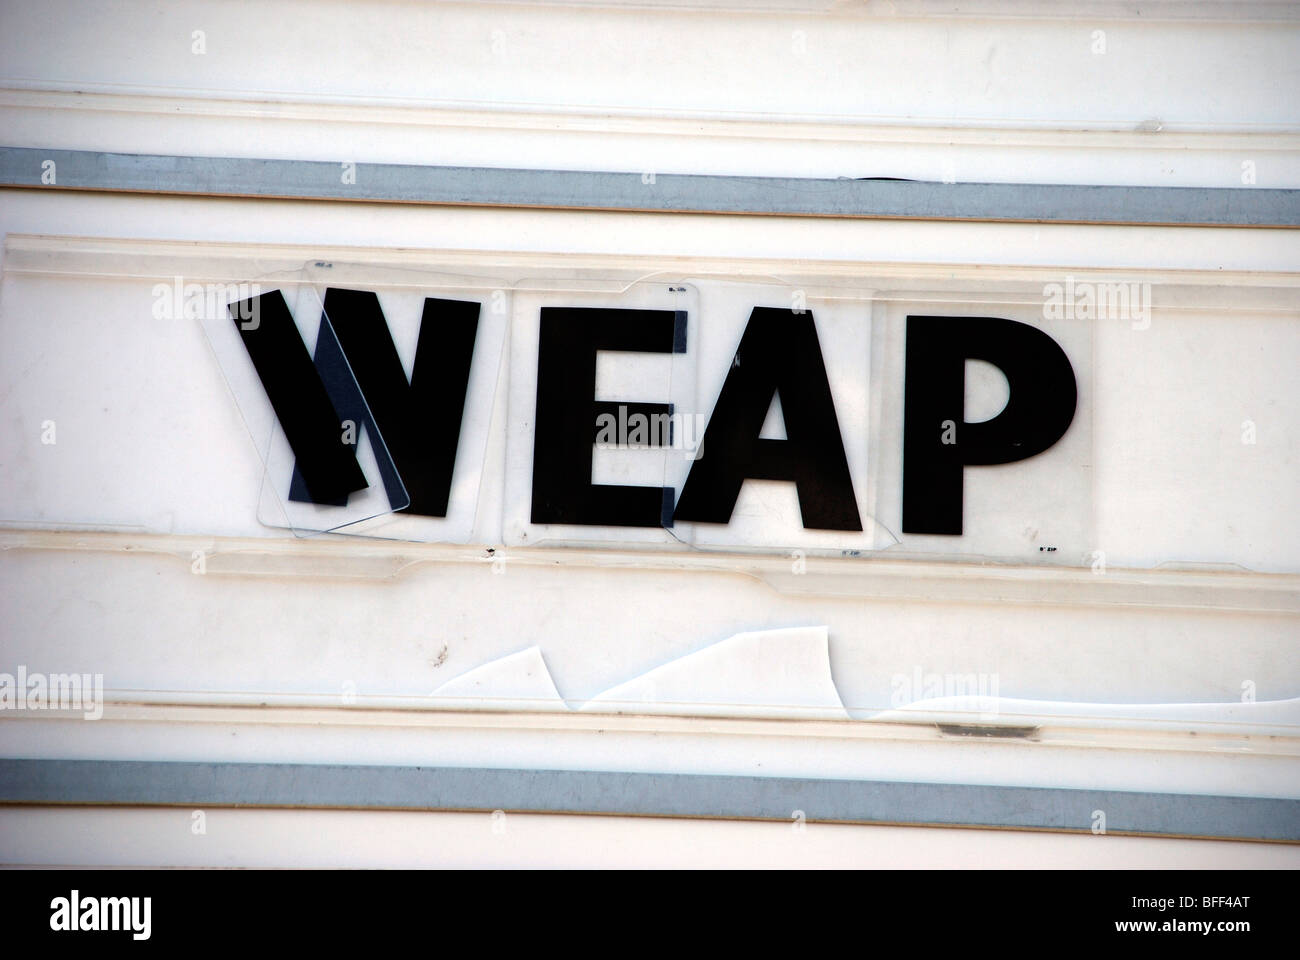 WEAP, Found Type on Cinema Marquee - Stock Image